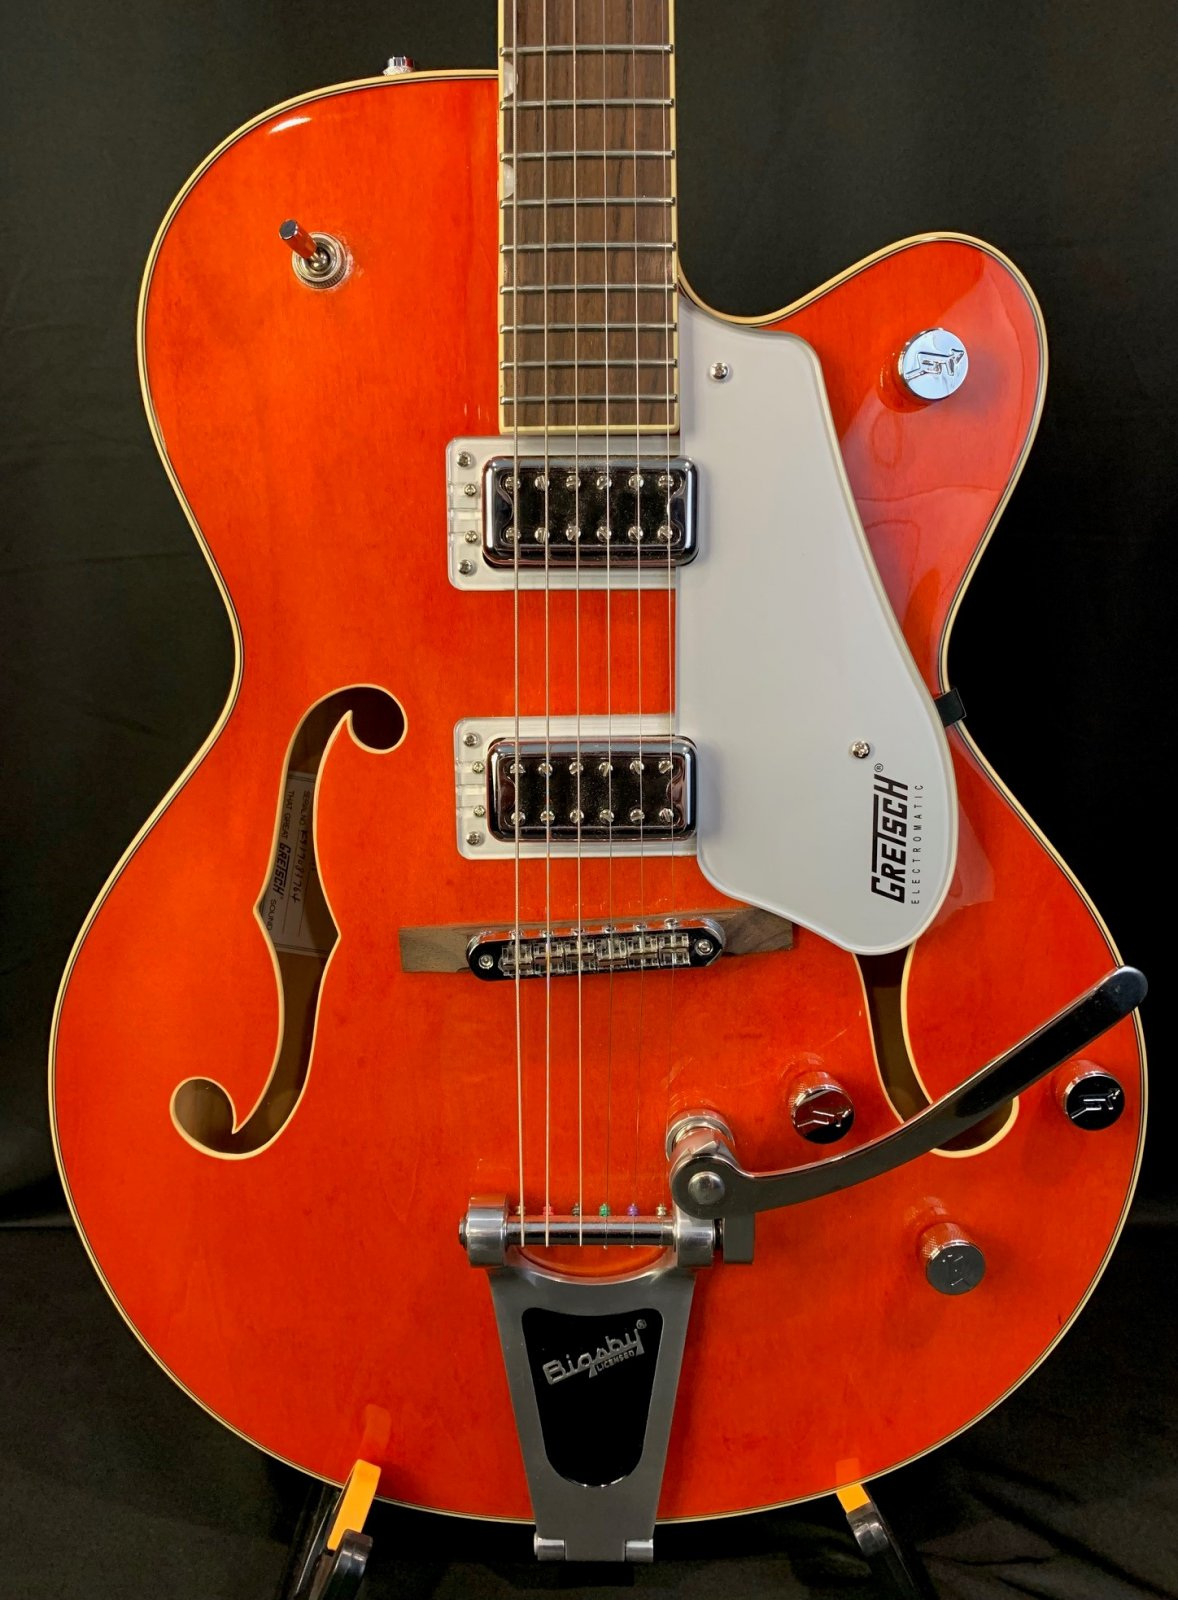 Used Gretsch G5420T EMTC HLH w/Bigsby in Orange with Hardshell Case